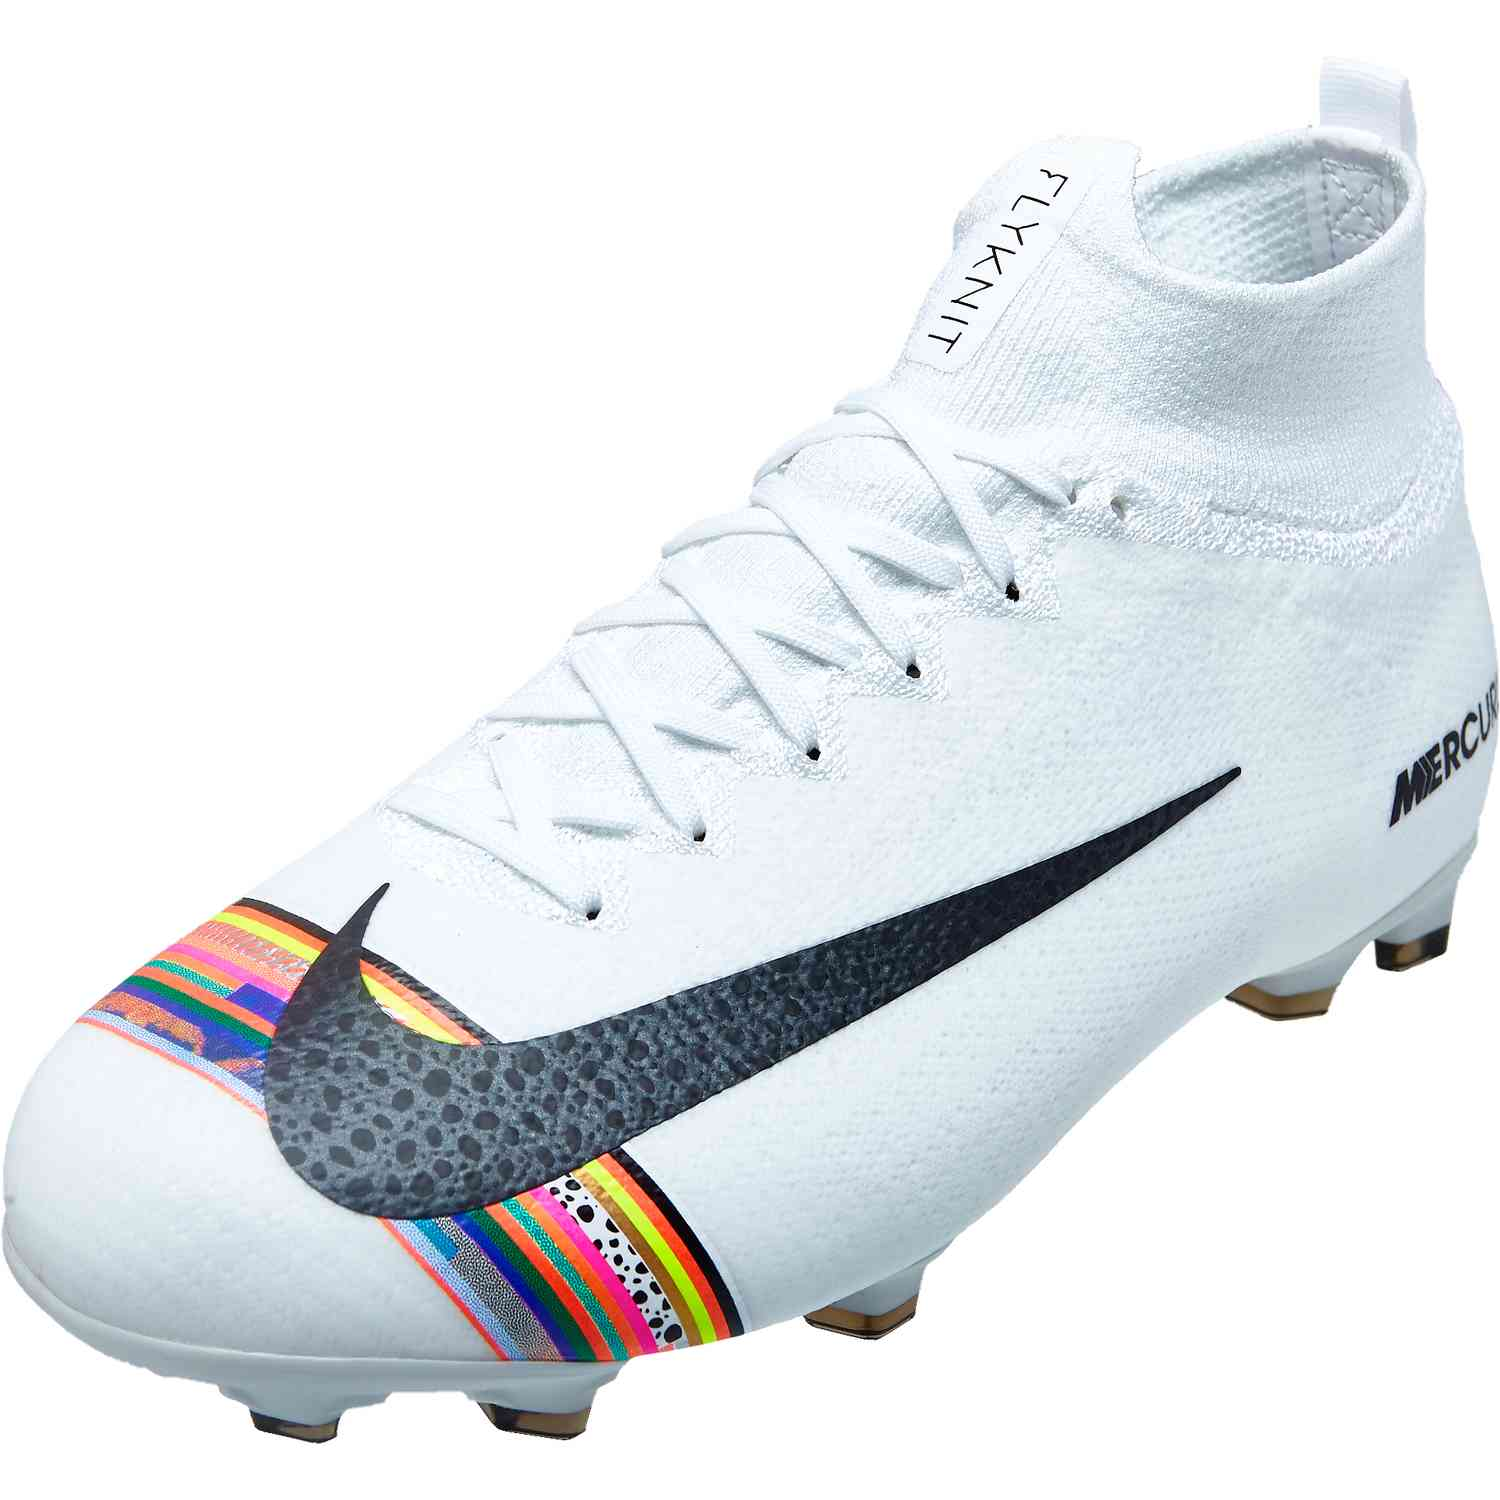 Kids Nike Mercurial Superfly 6 Elite FG - Level Up - SoccerPro